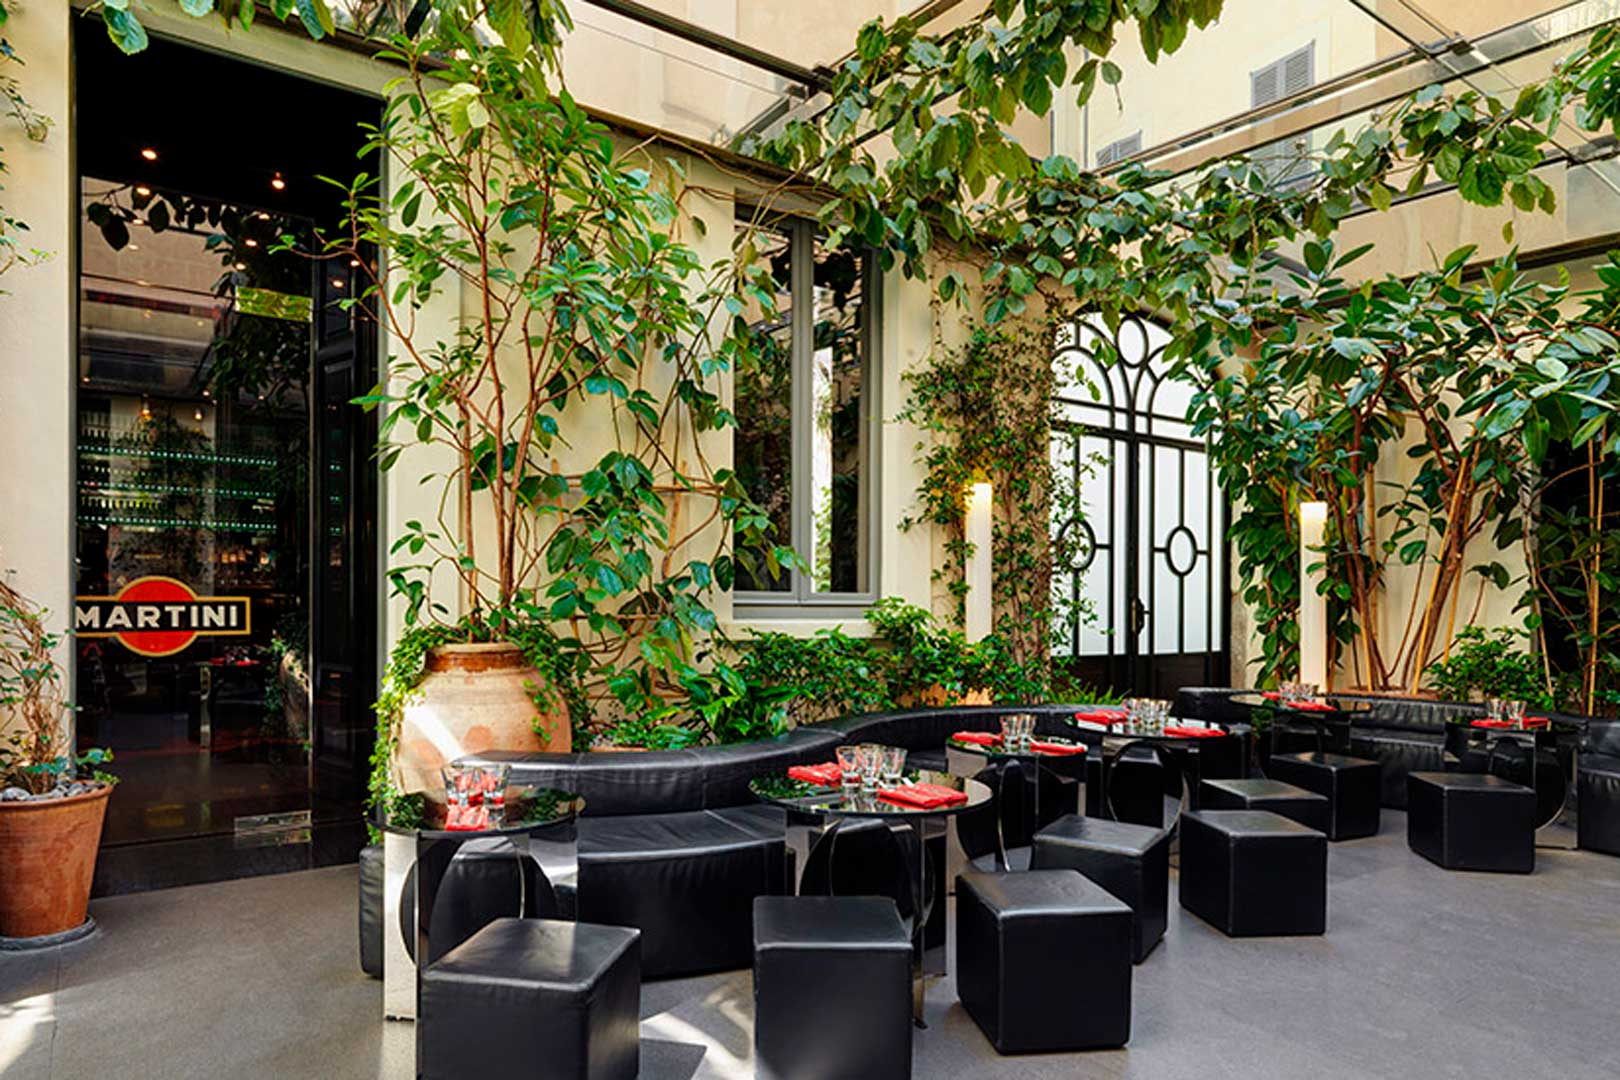 The Best Fashion Bars And Restaurants In Milan Flawless Milano